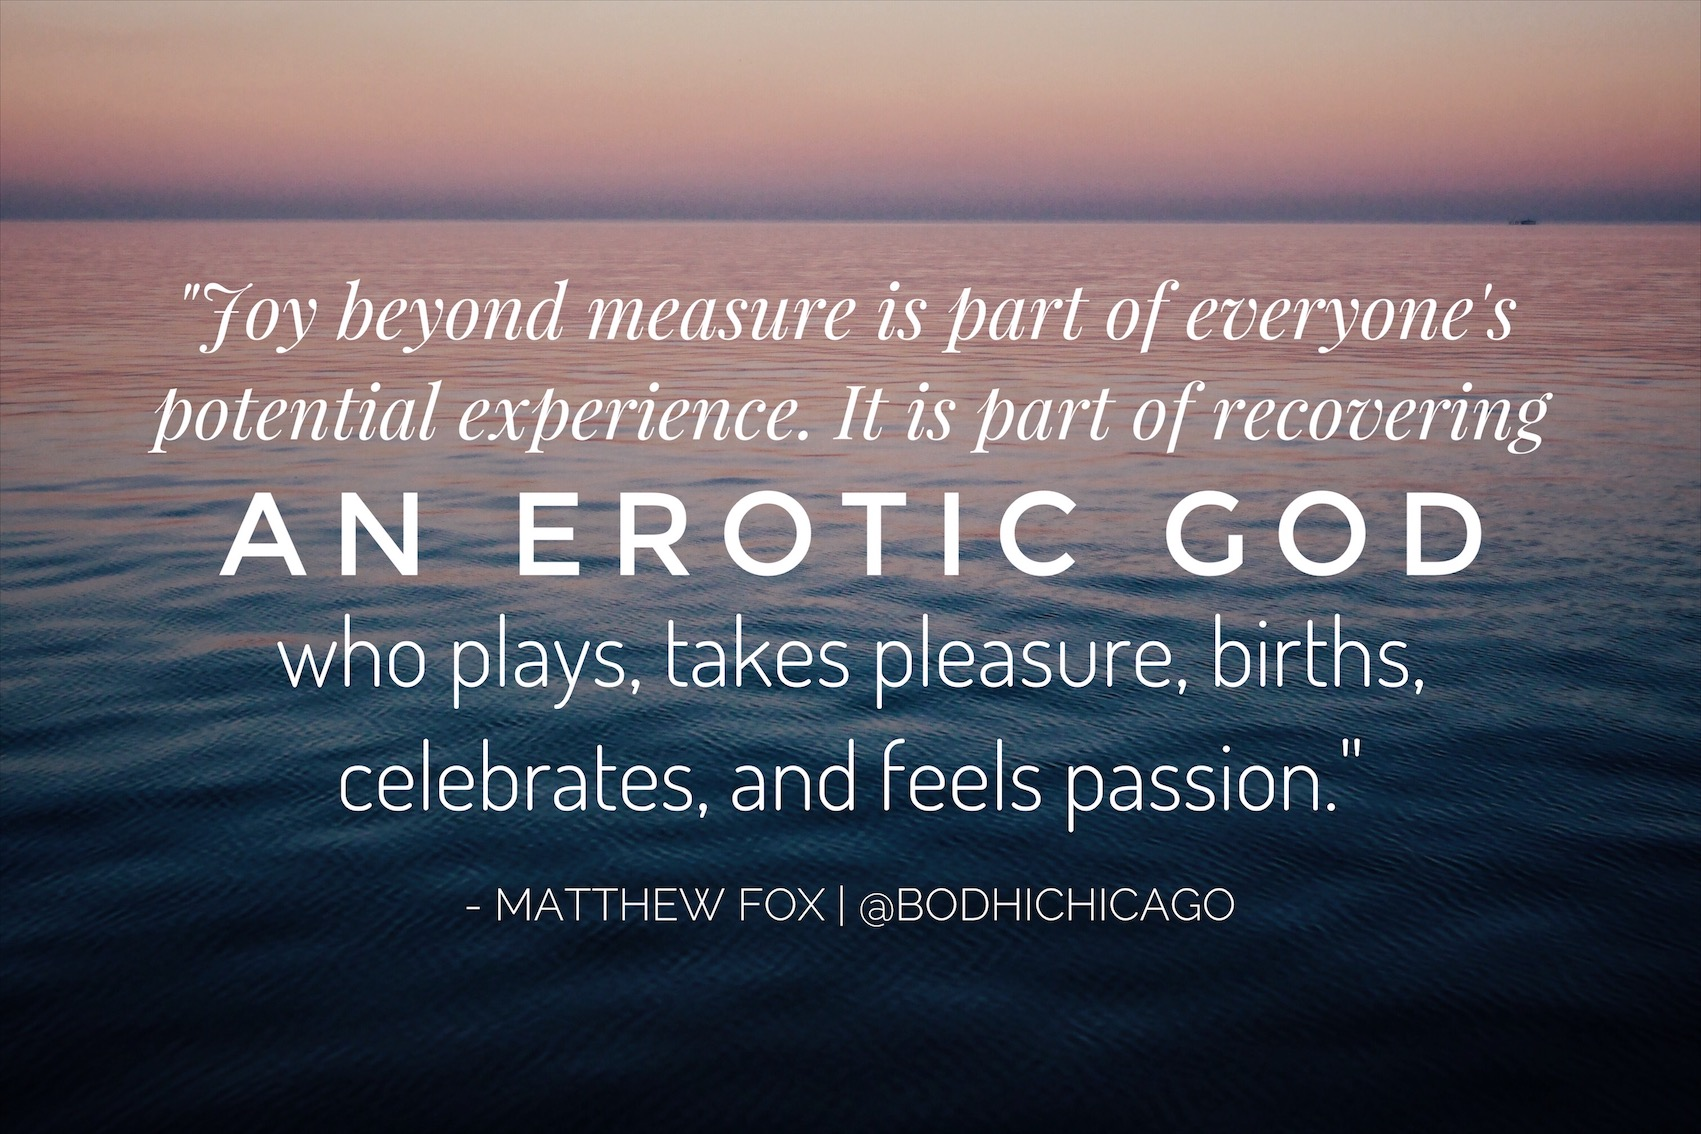 God Quote Wednesday Wisdom Quote Matthew Fox On An Erotic God  Bodhi